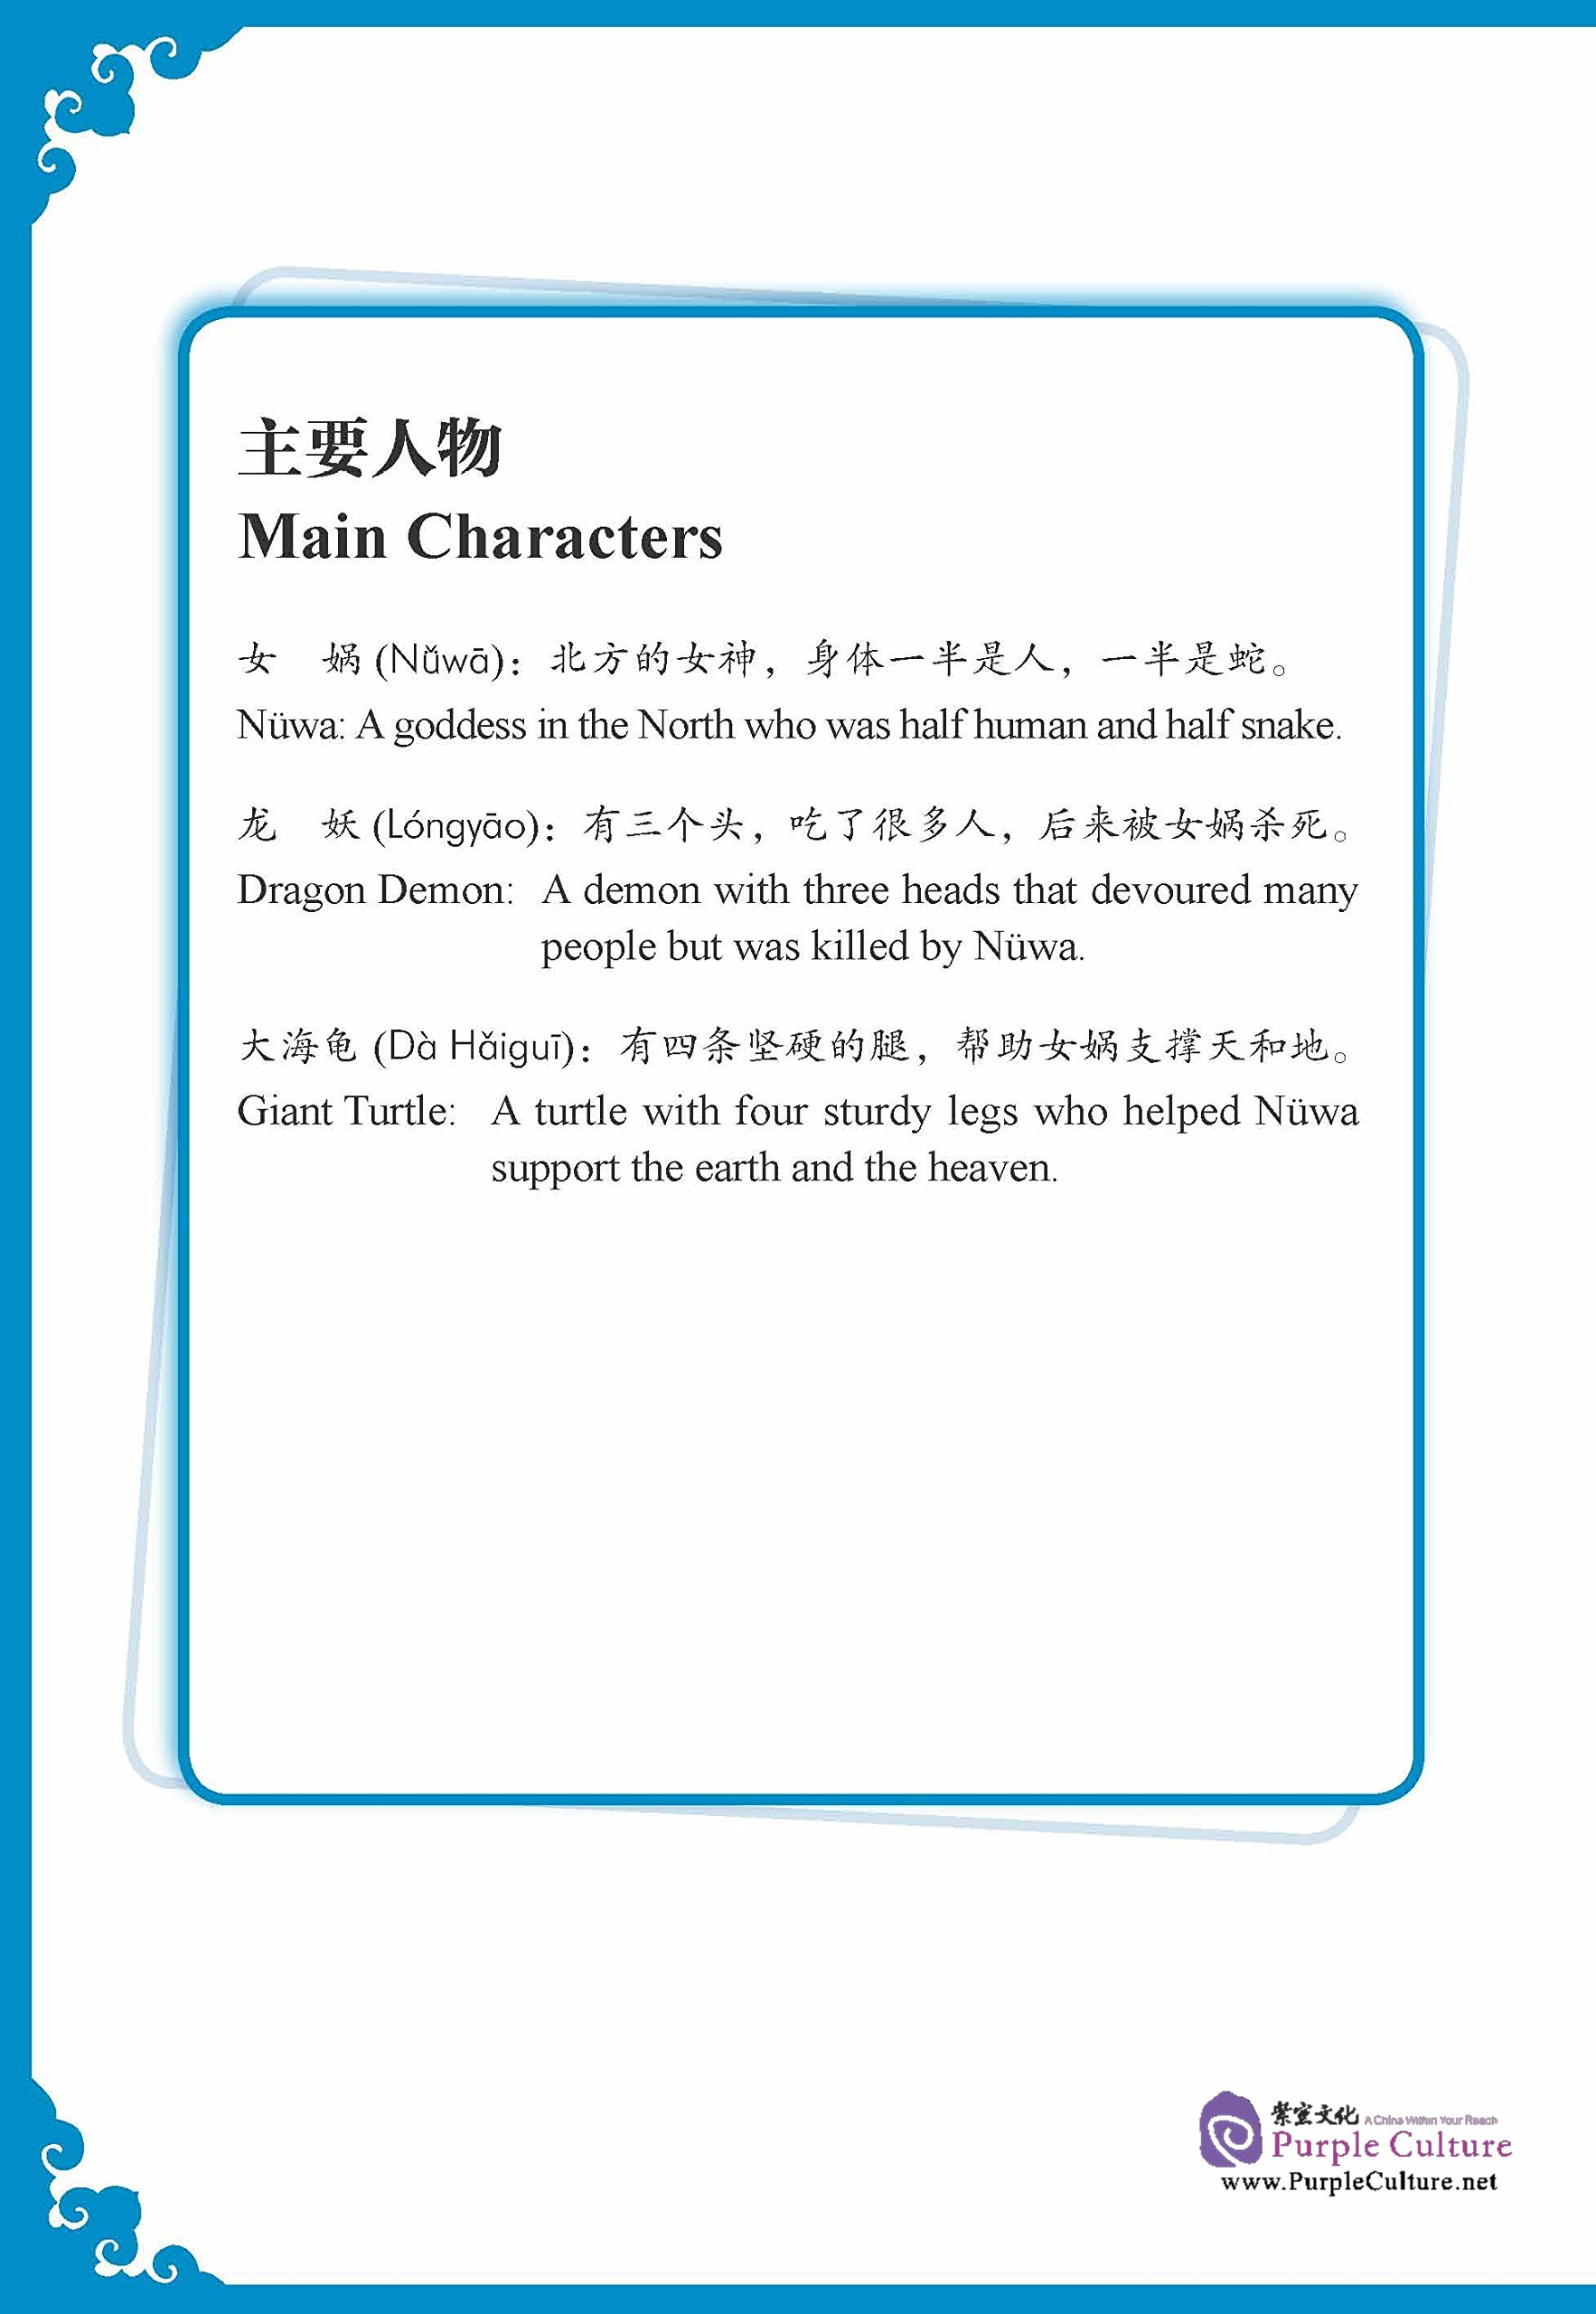 Rainbow Bridge Graded Chinese Reader Level 1 300